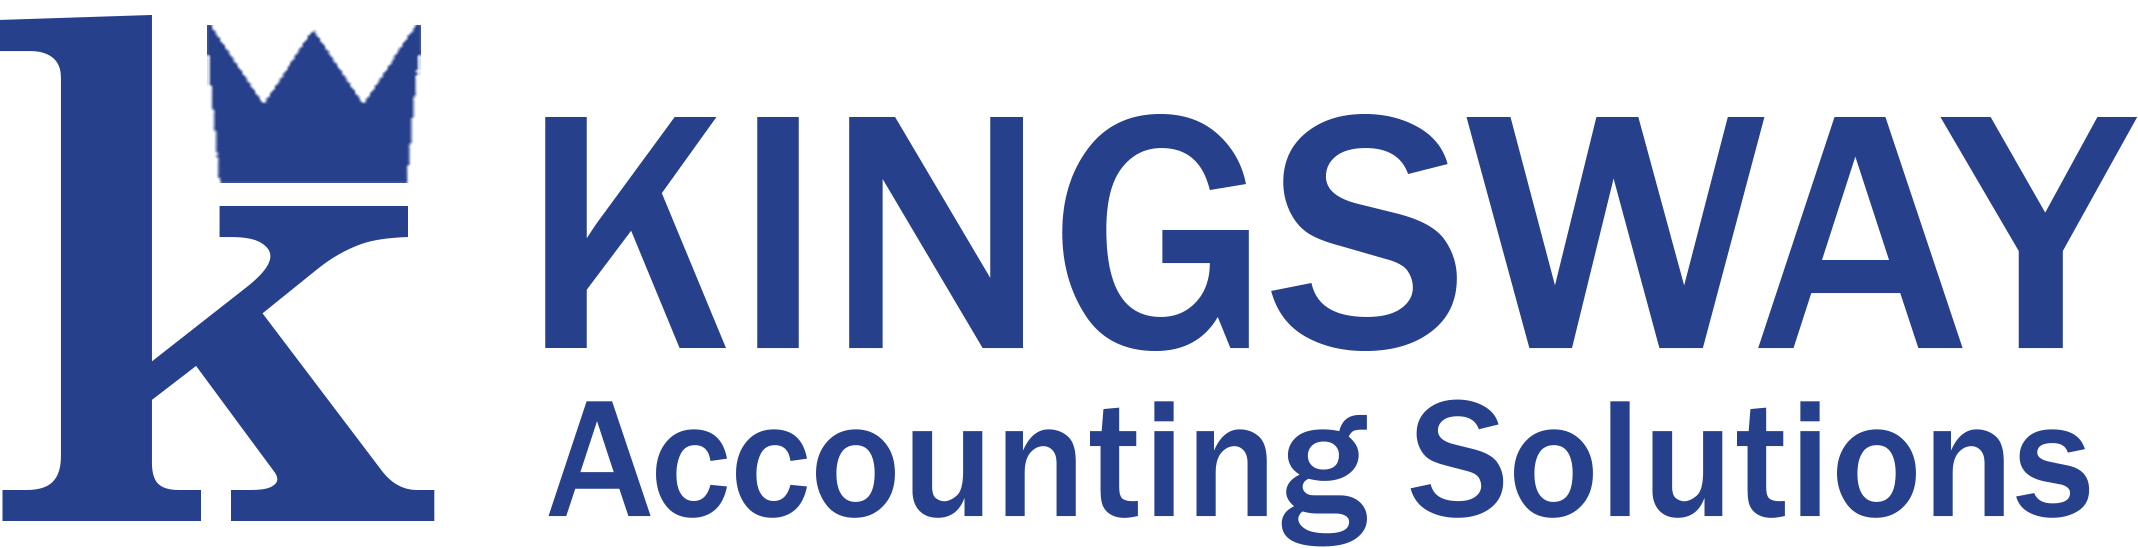 Kingsway Accounting Solutions